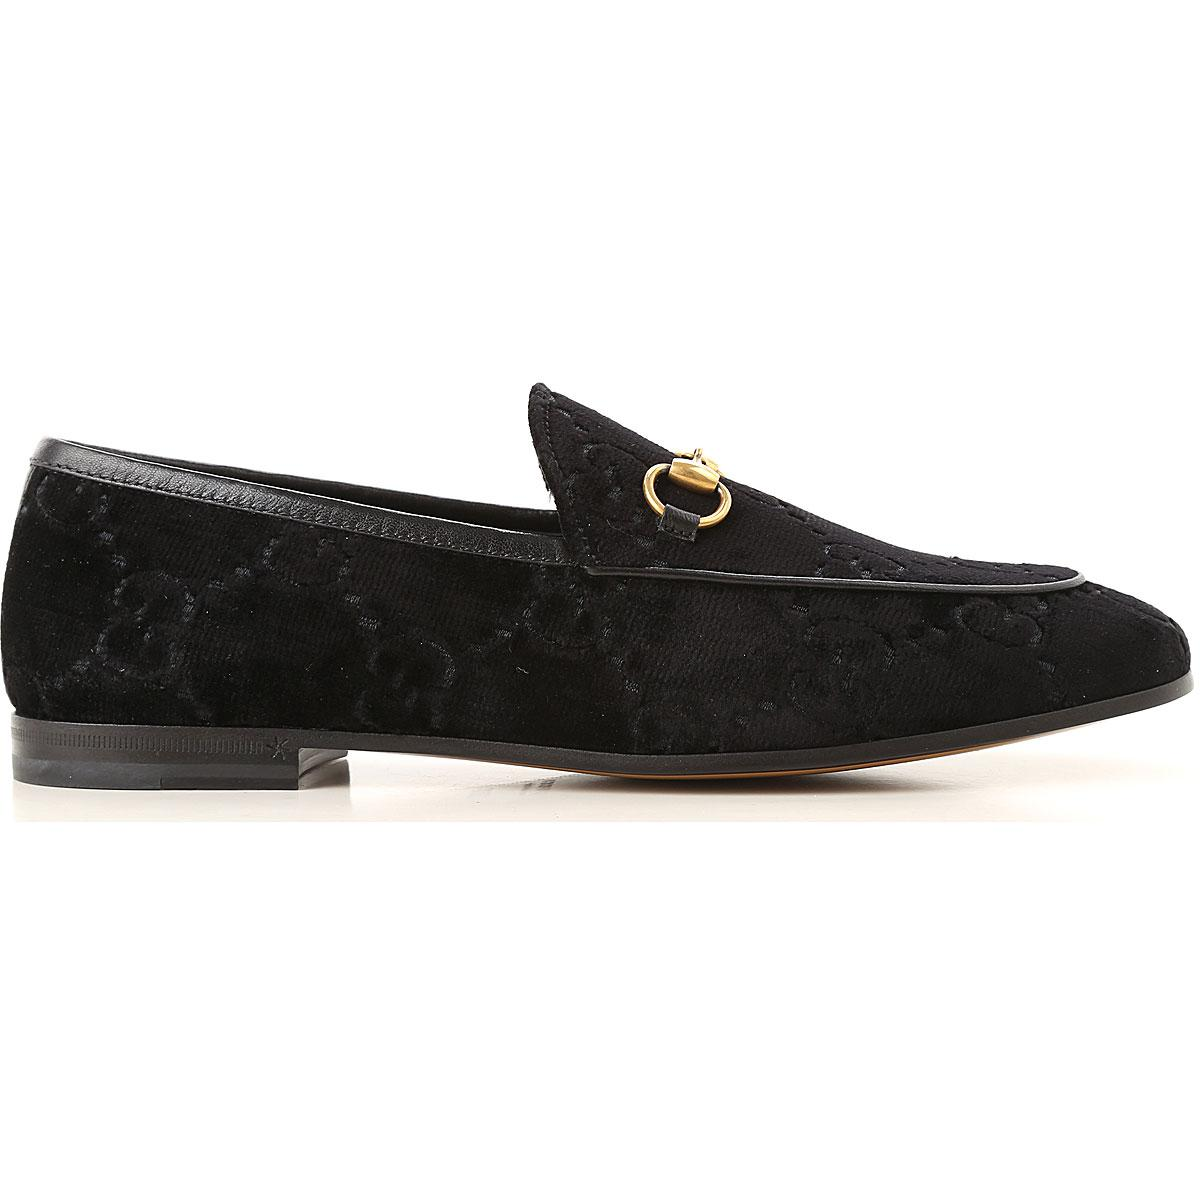 079a967bf Gucci - Black Shoes For Women - Lyst. View fullscreen